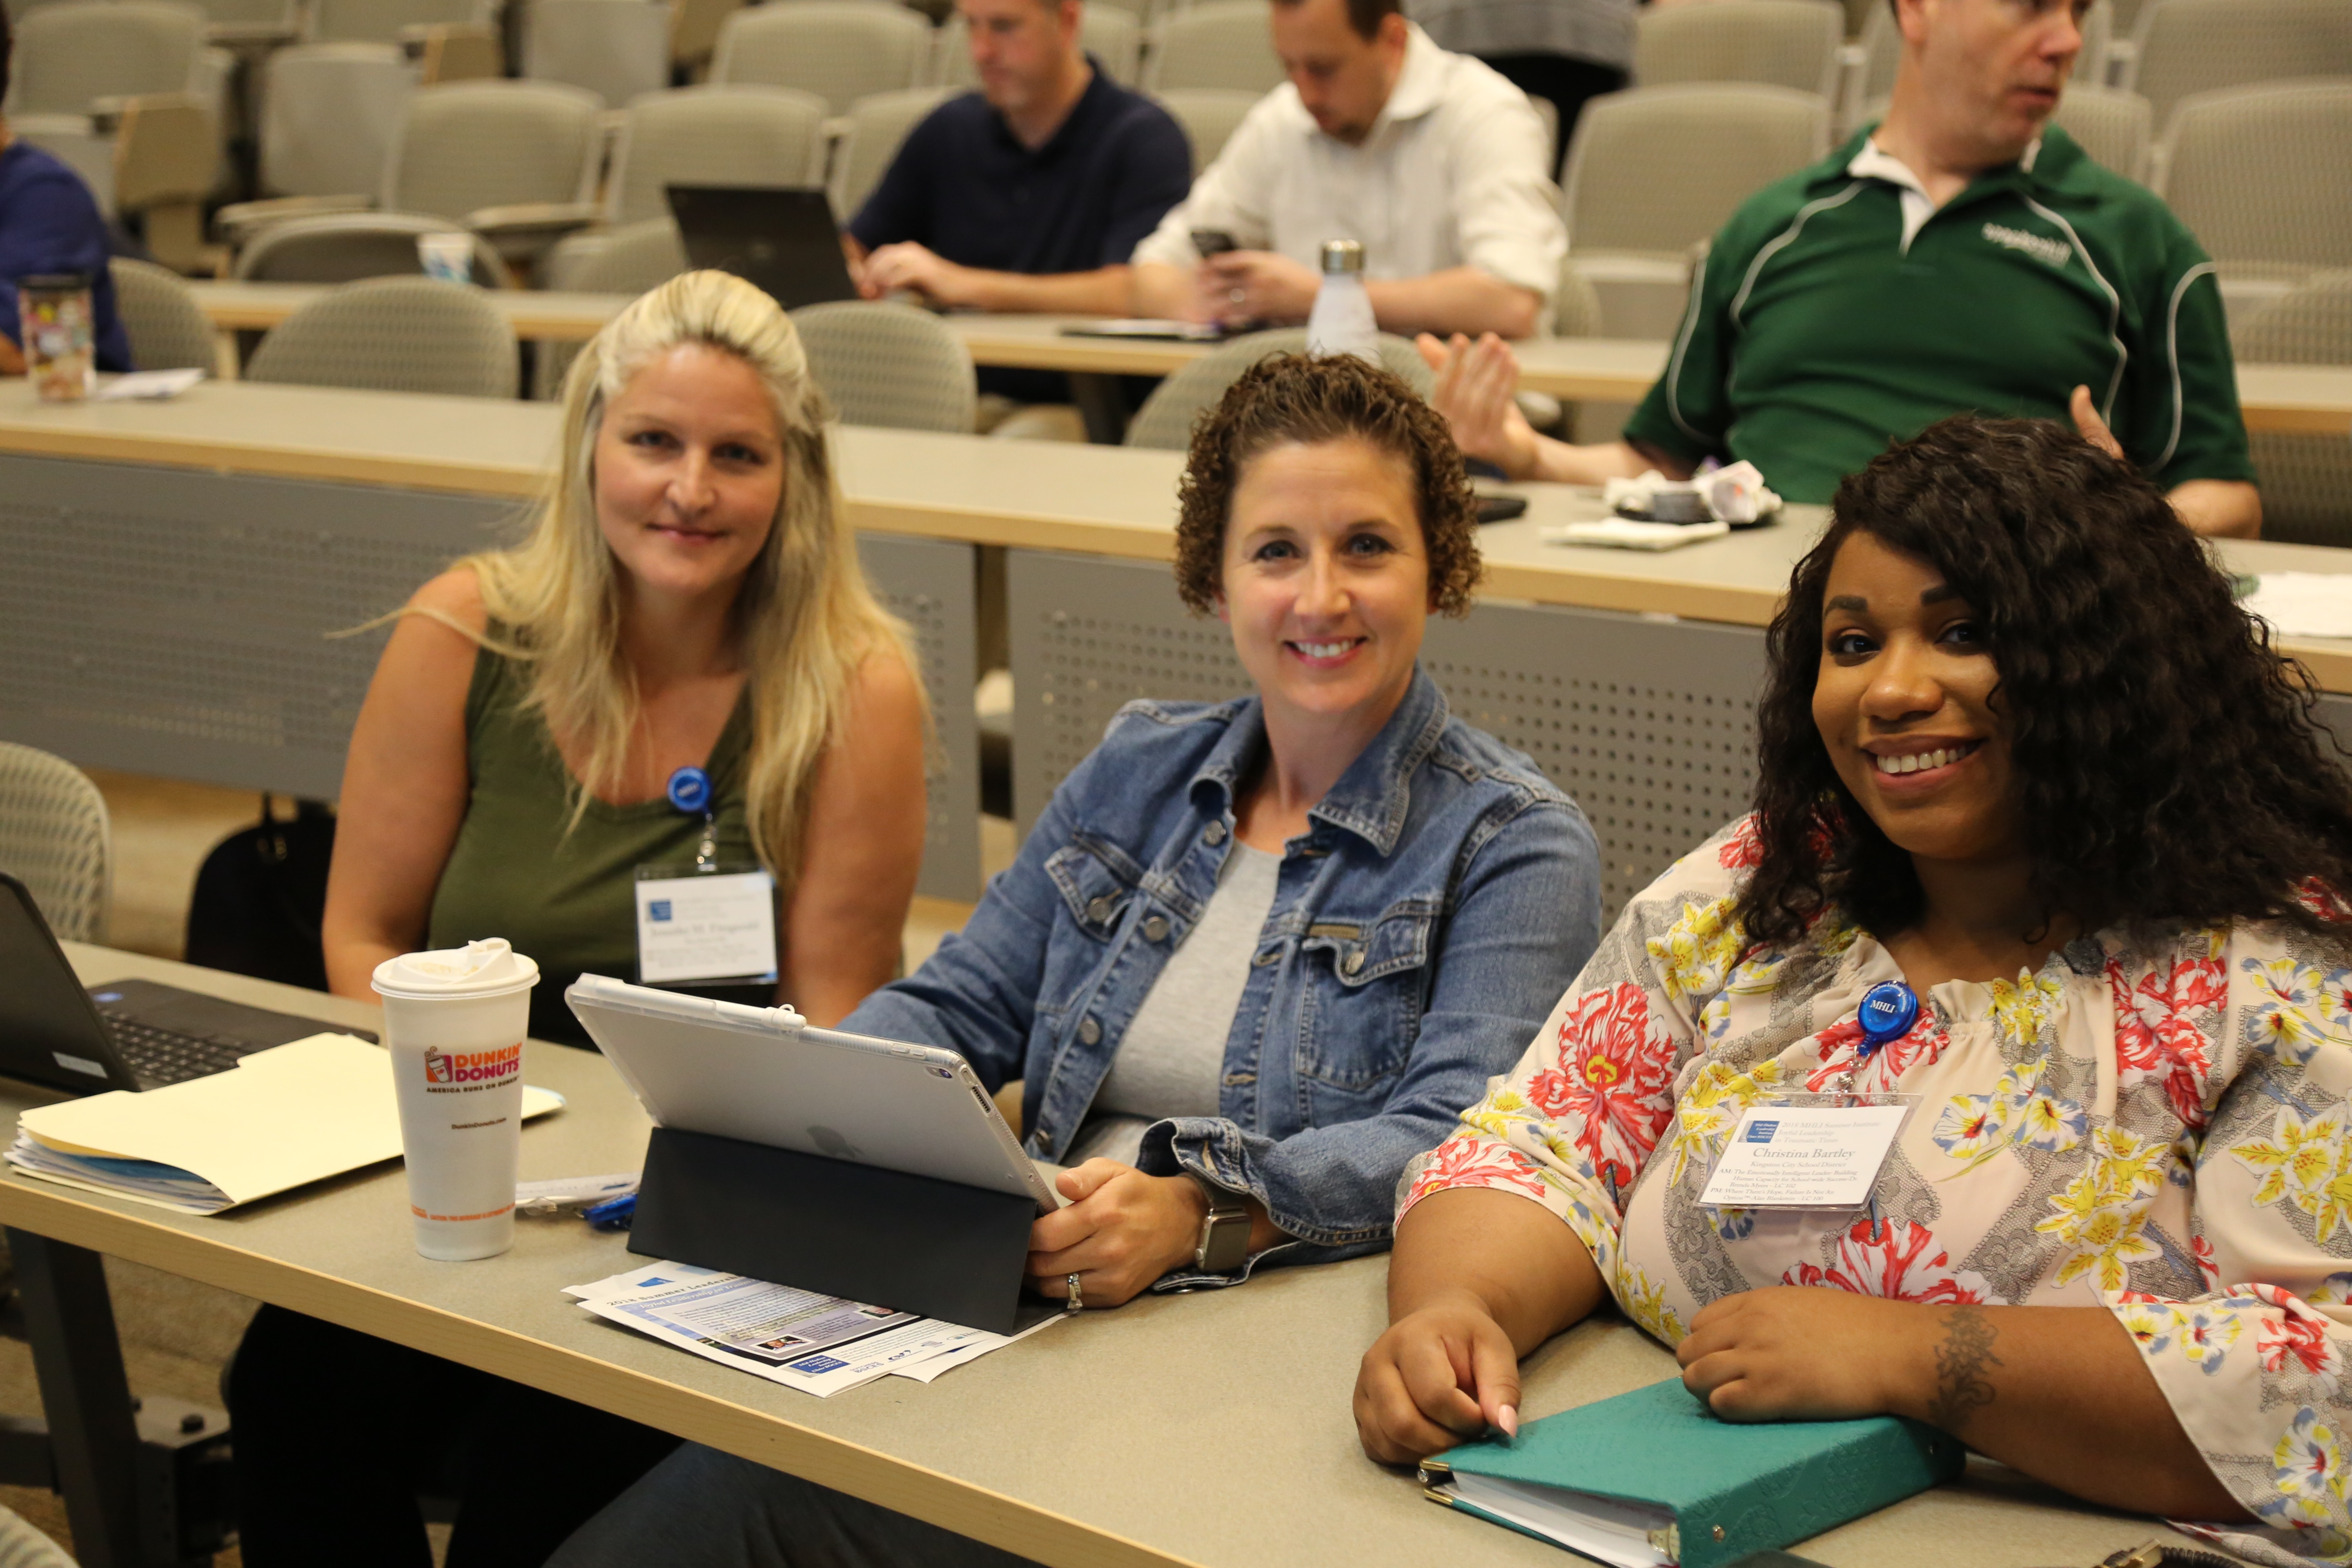 Equity for All Theme of 2019 Mid-Hudson Summer Leadership Conference